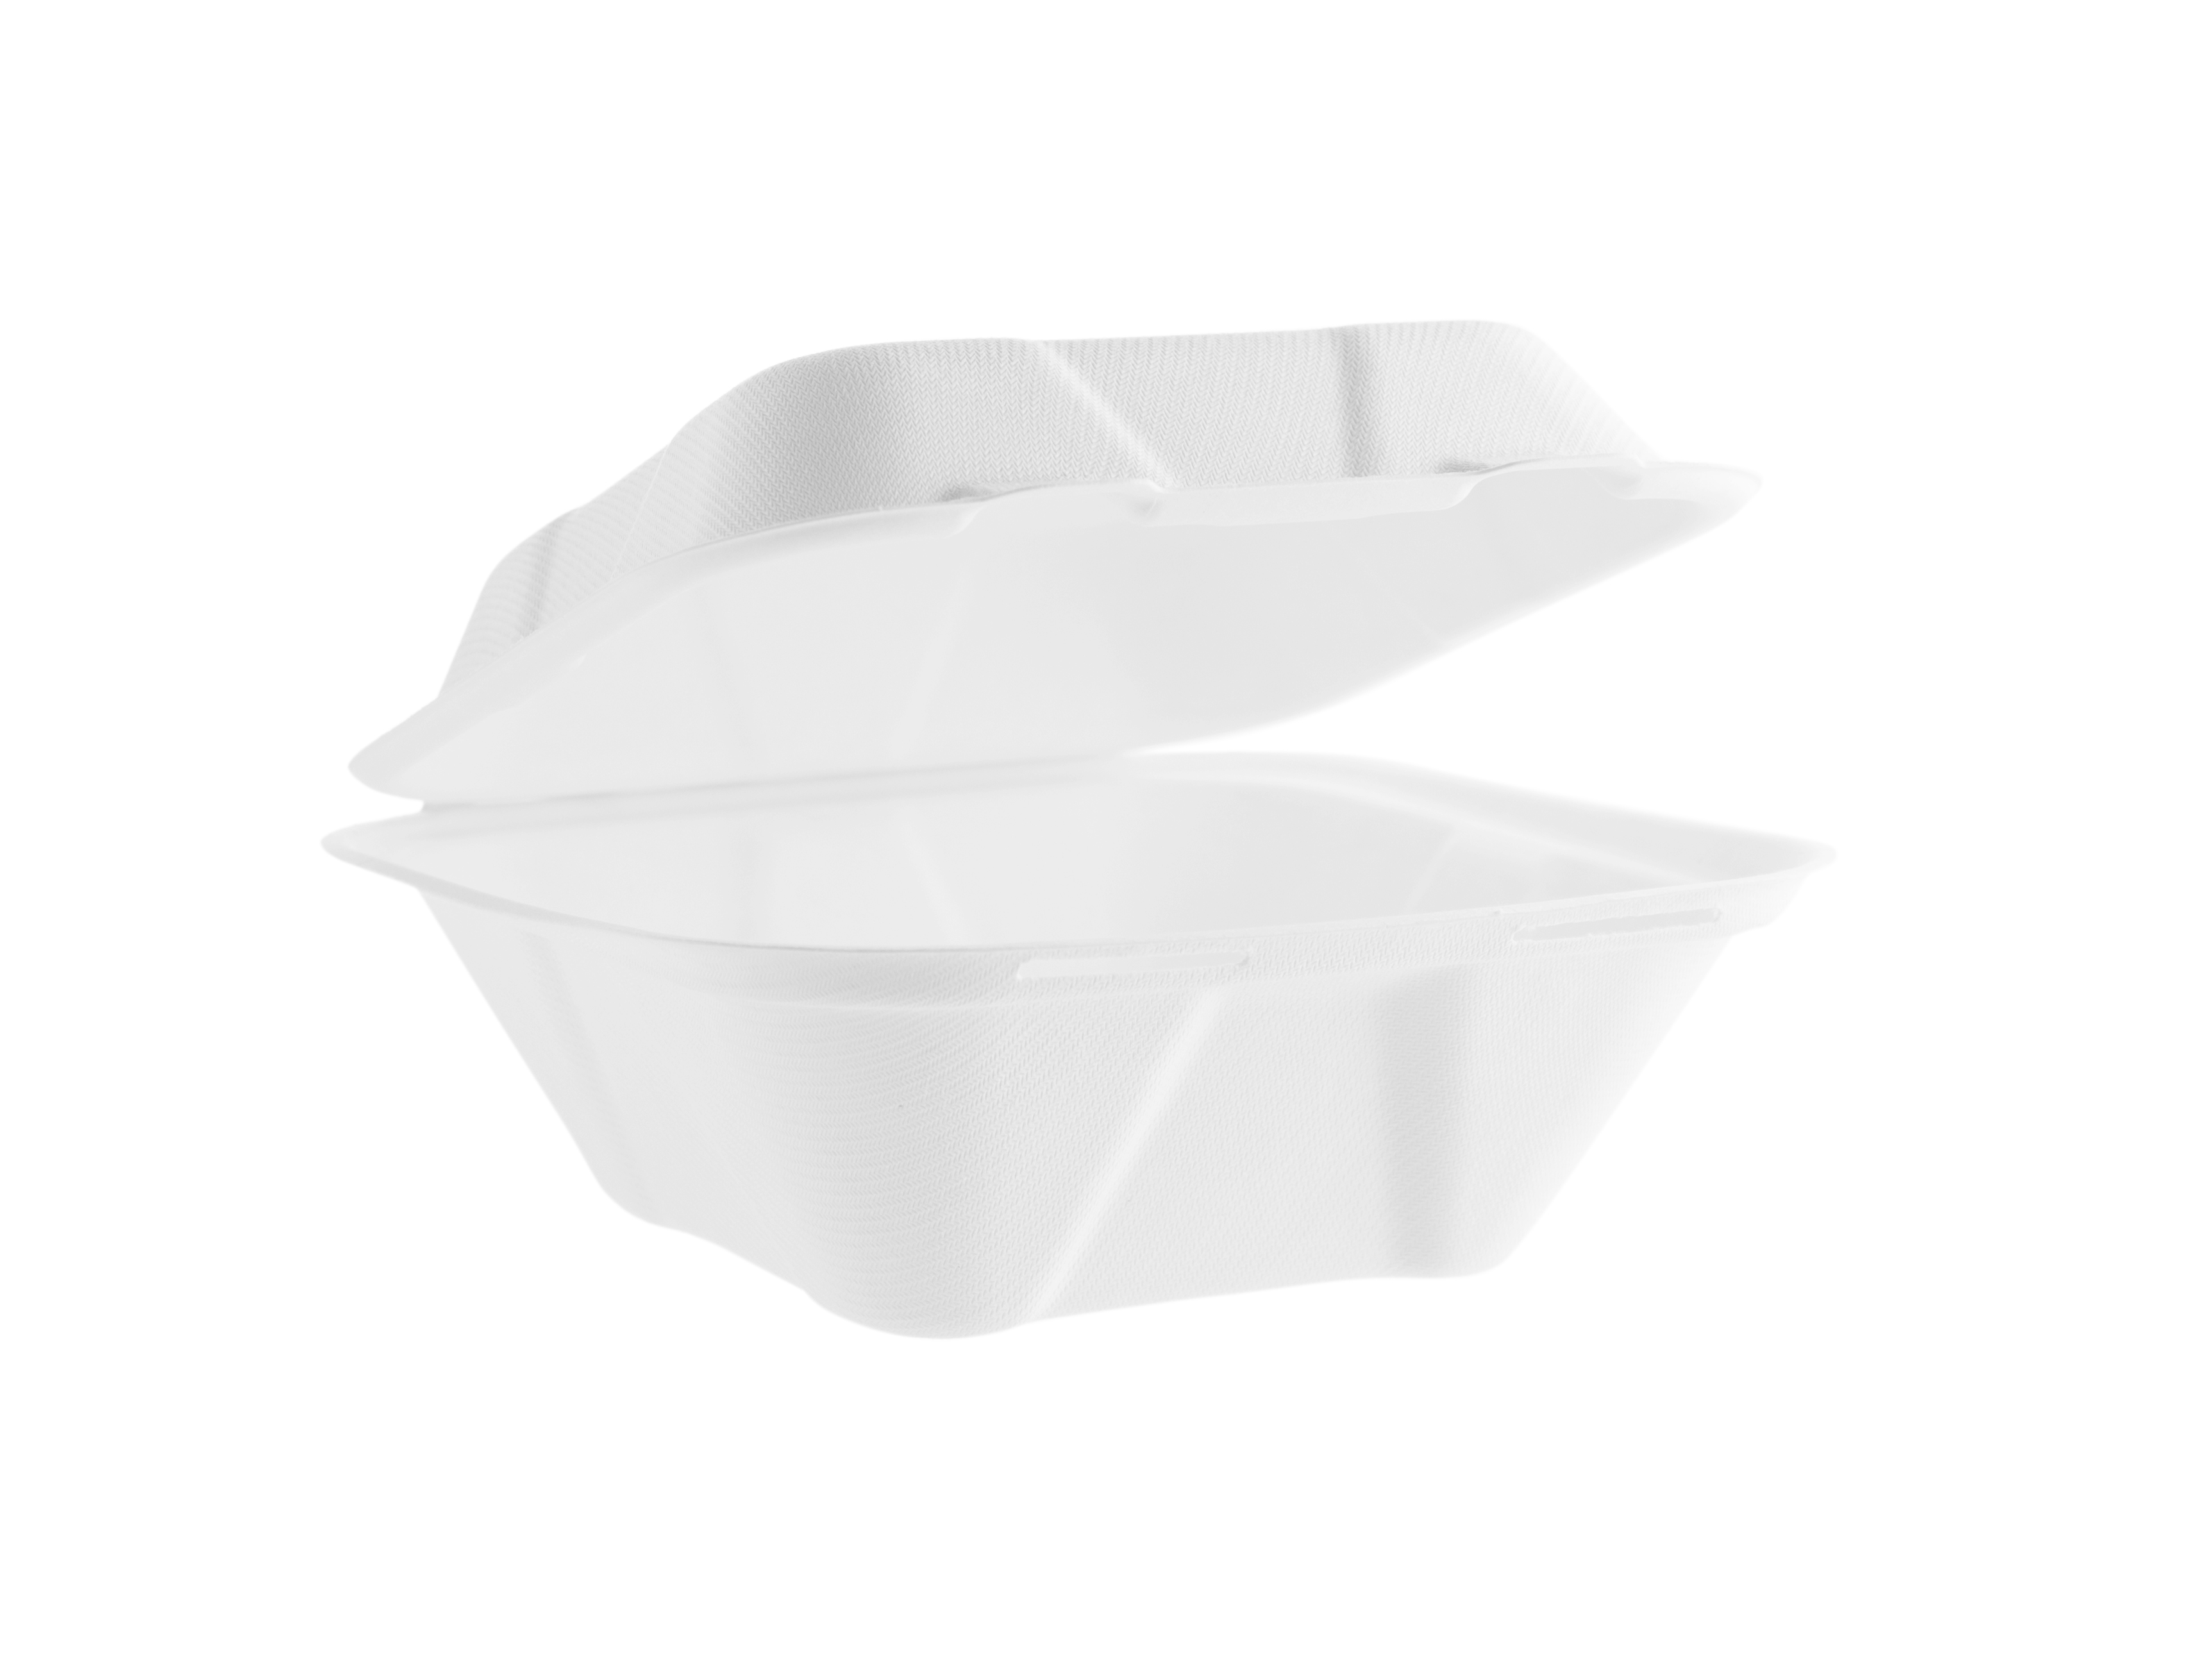 7in square bagasse clamshell - white - Vegware